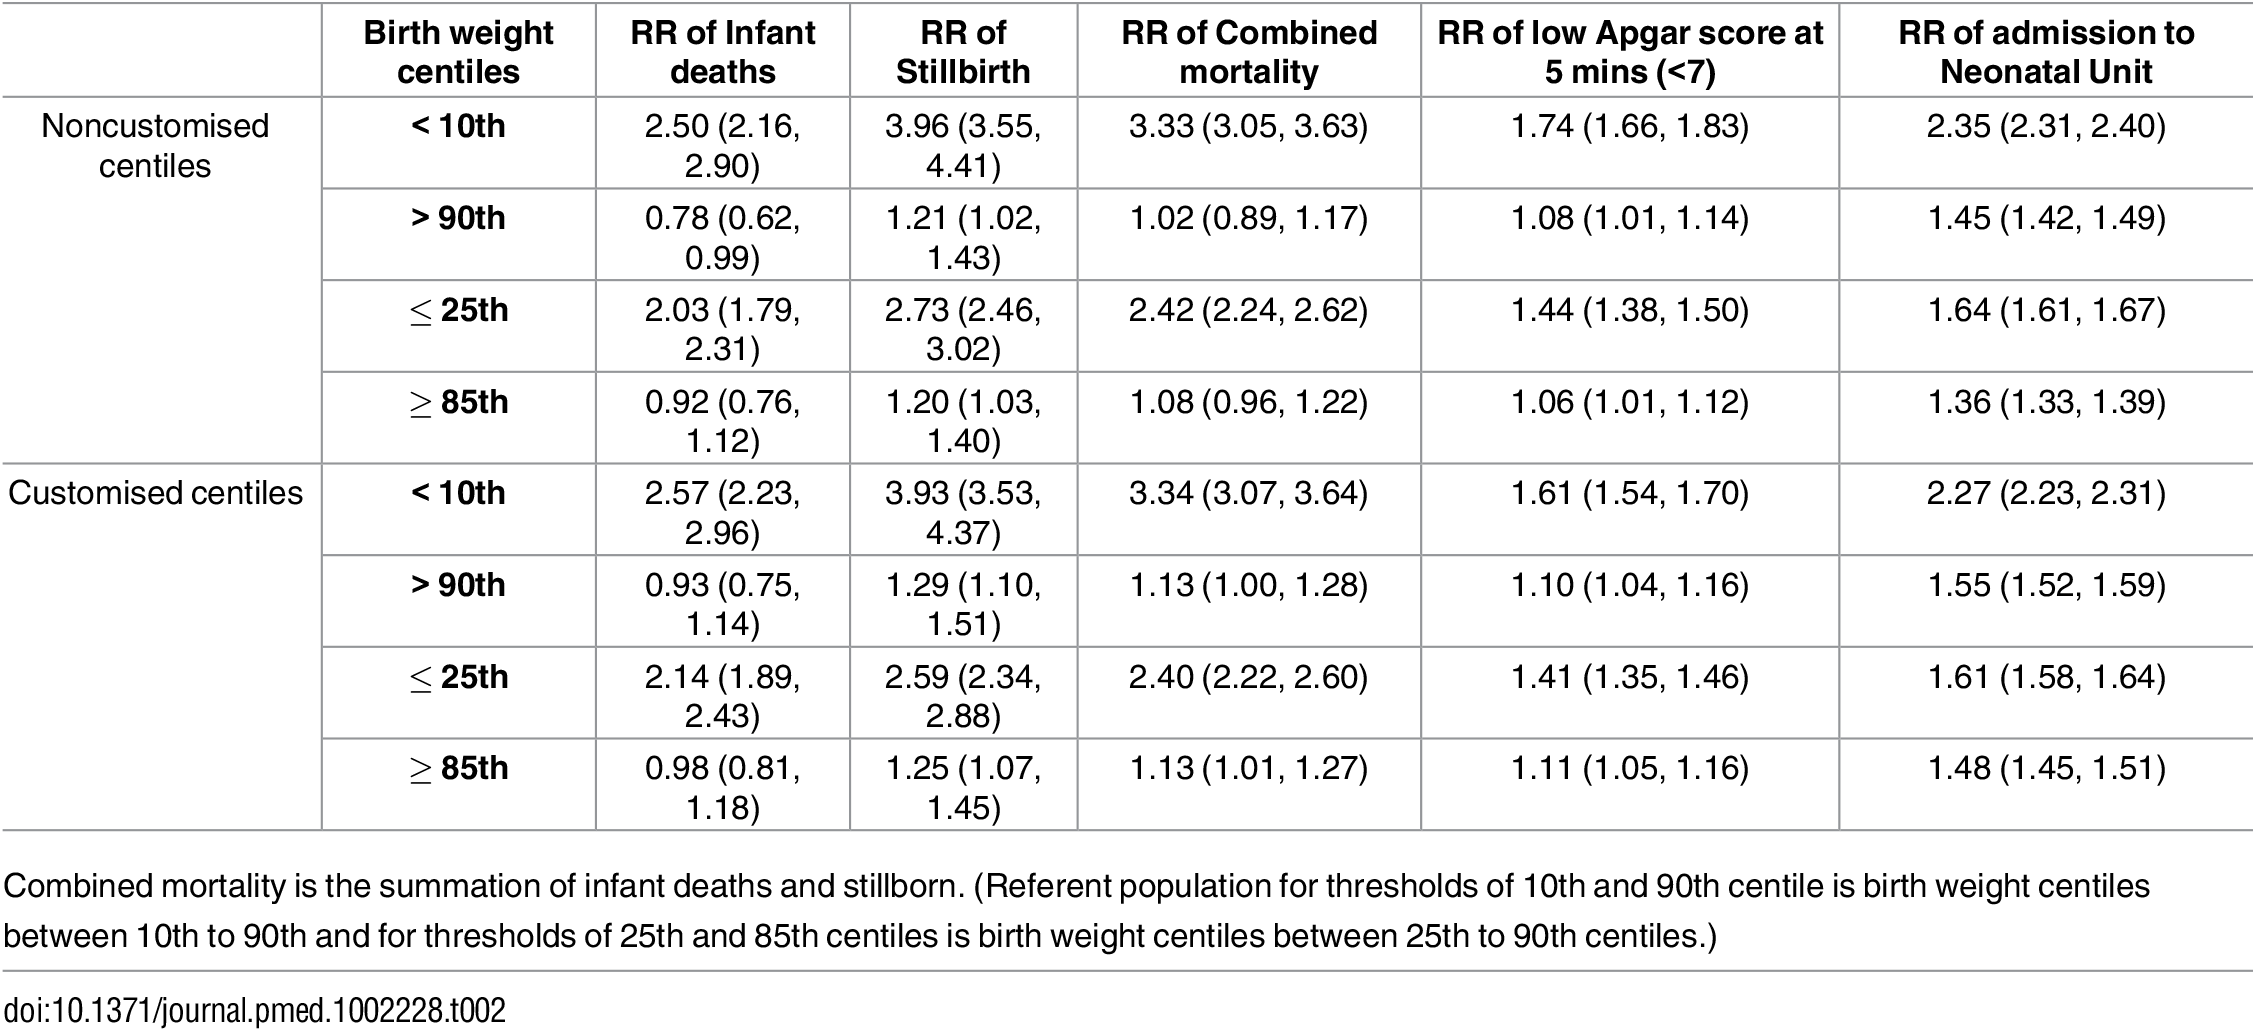 Relative risk (RR) with 95% confidence intervals of adverse outcomes for chosen and traditional birth weight centiles (noncustomised and customised) referent to the birth weight centiles included between the thresholds.